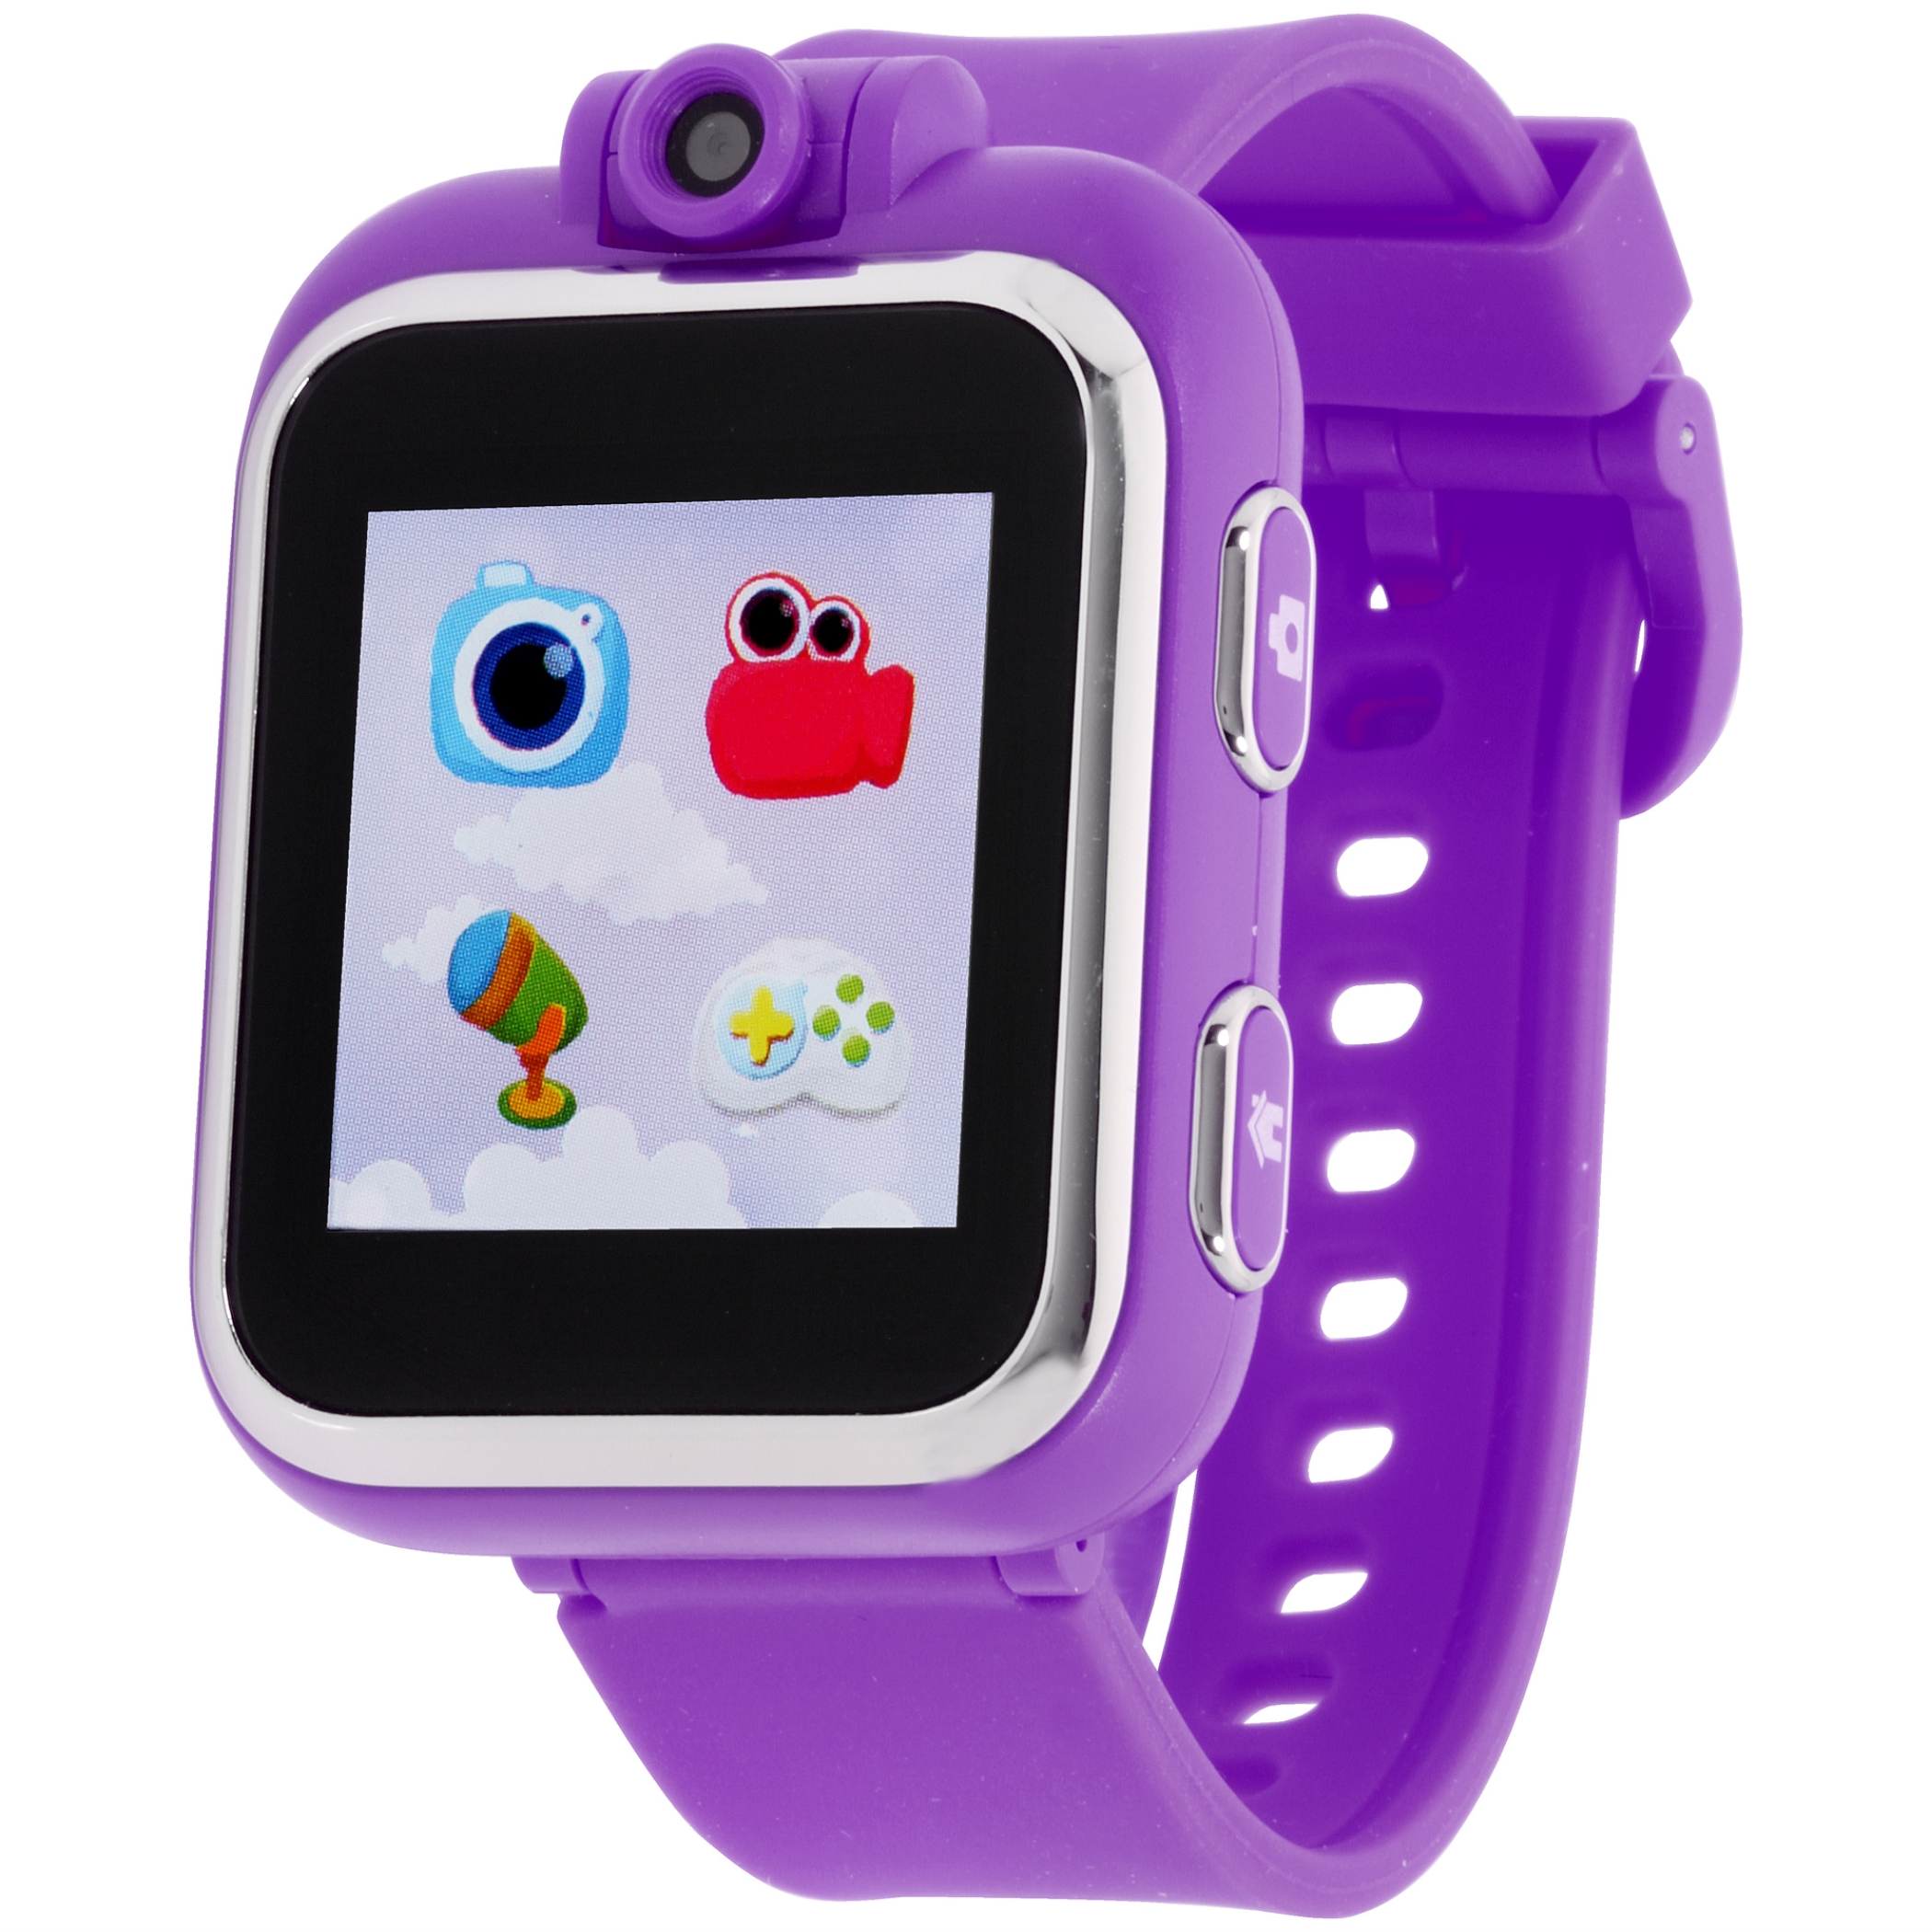 iTouch Playzoom Kids Smart Watch Purple